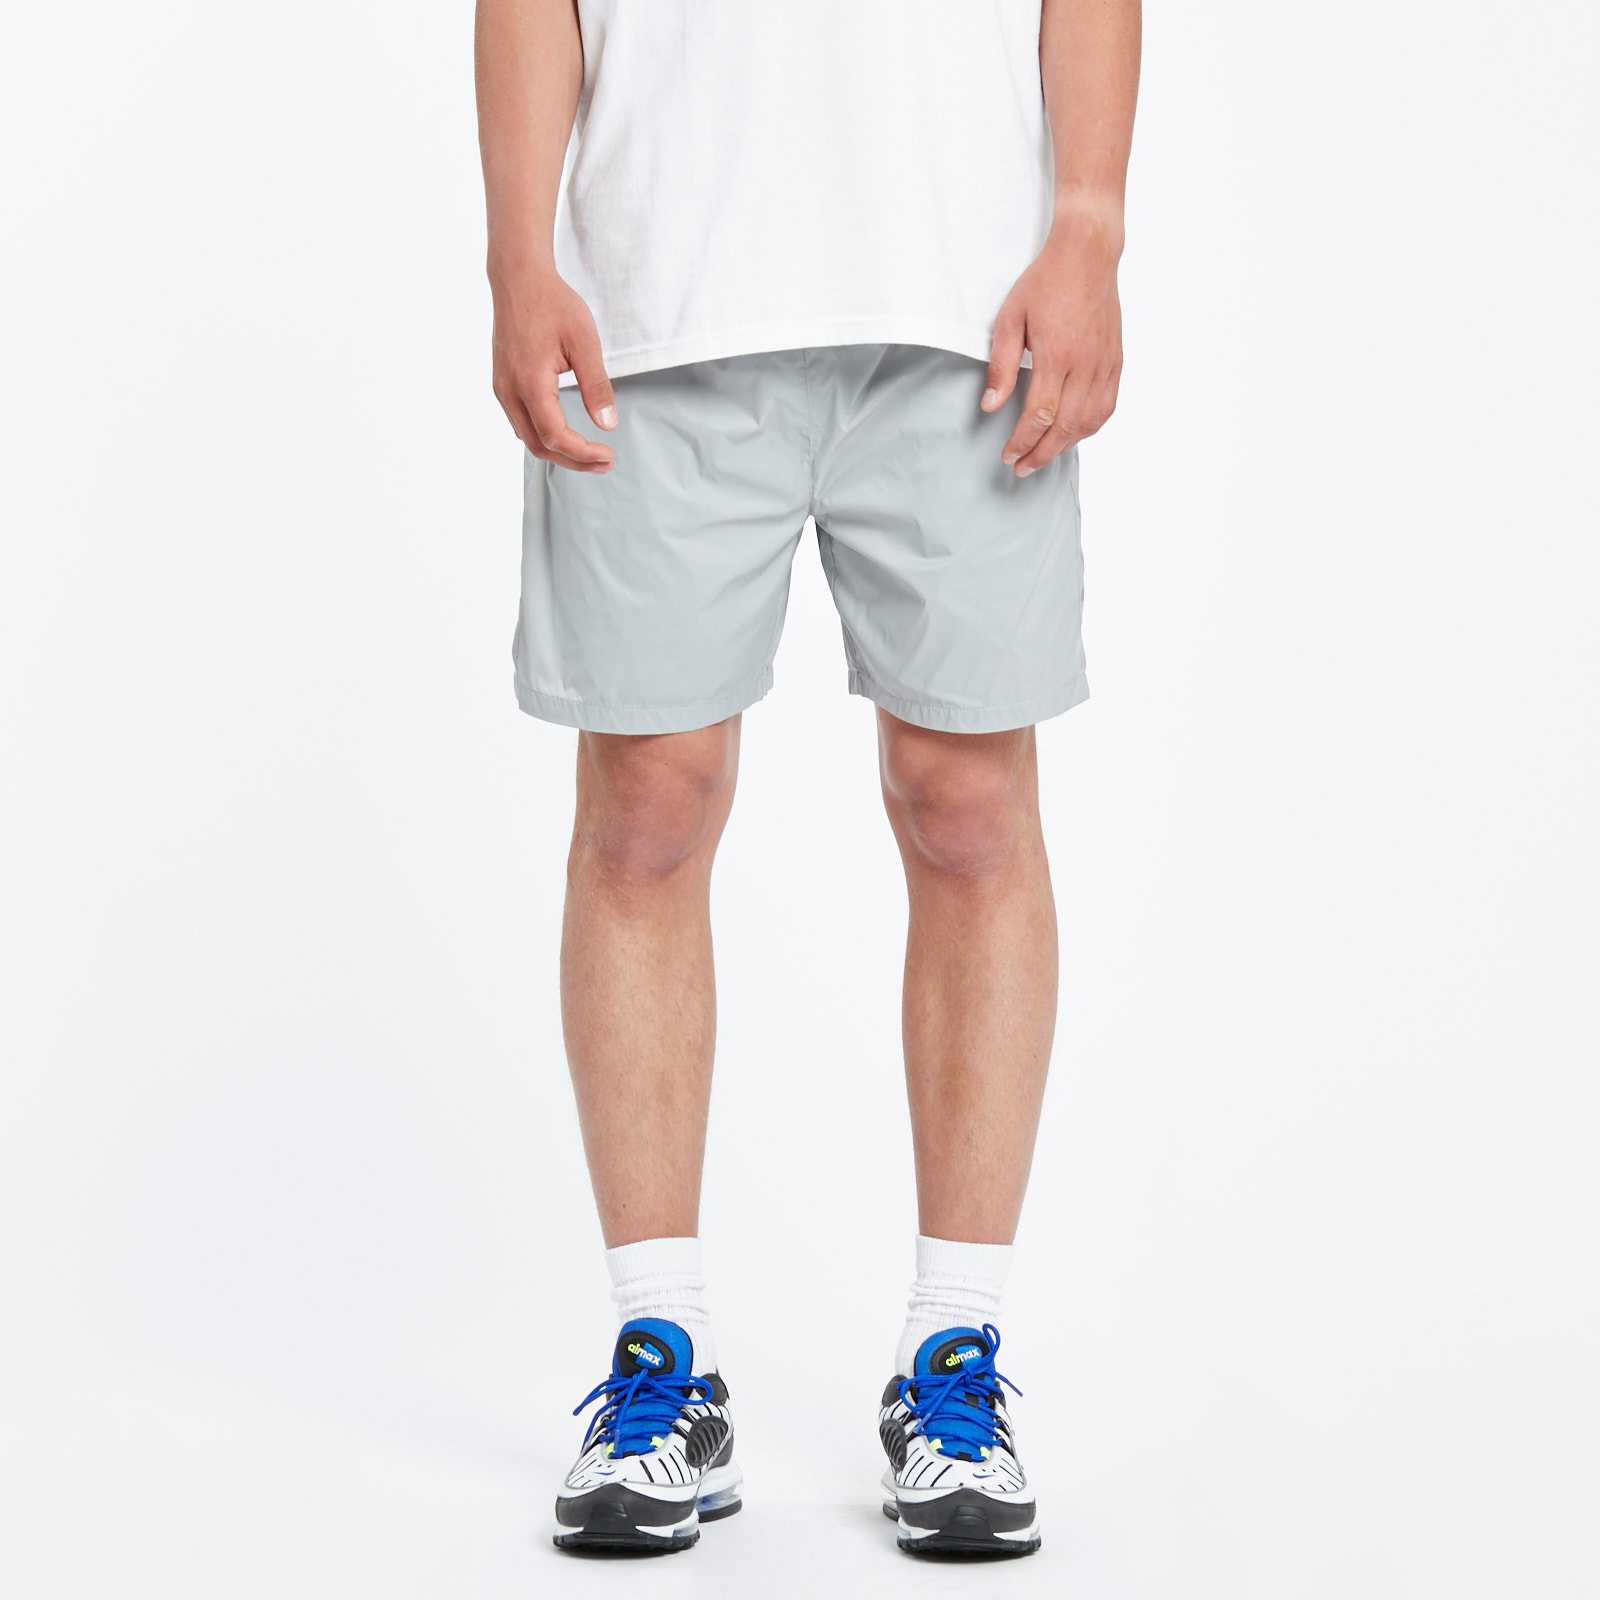 7acbba94313a2f Stussy Sport Nylon Short - 112223-0008 - Sneakersnstuff | sneakers ...